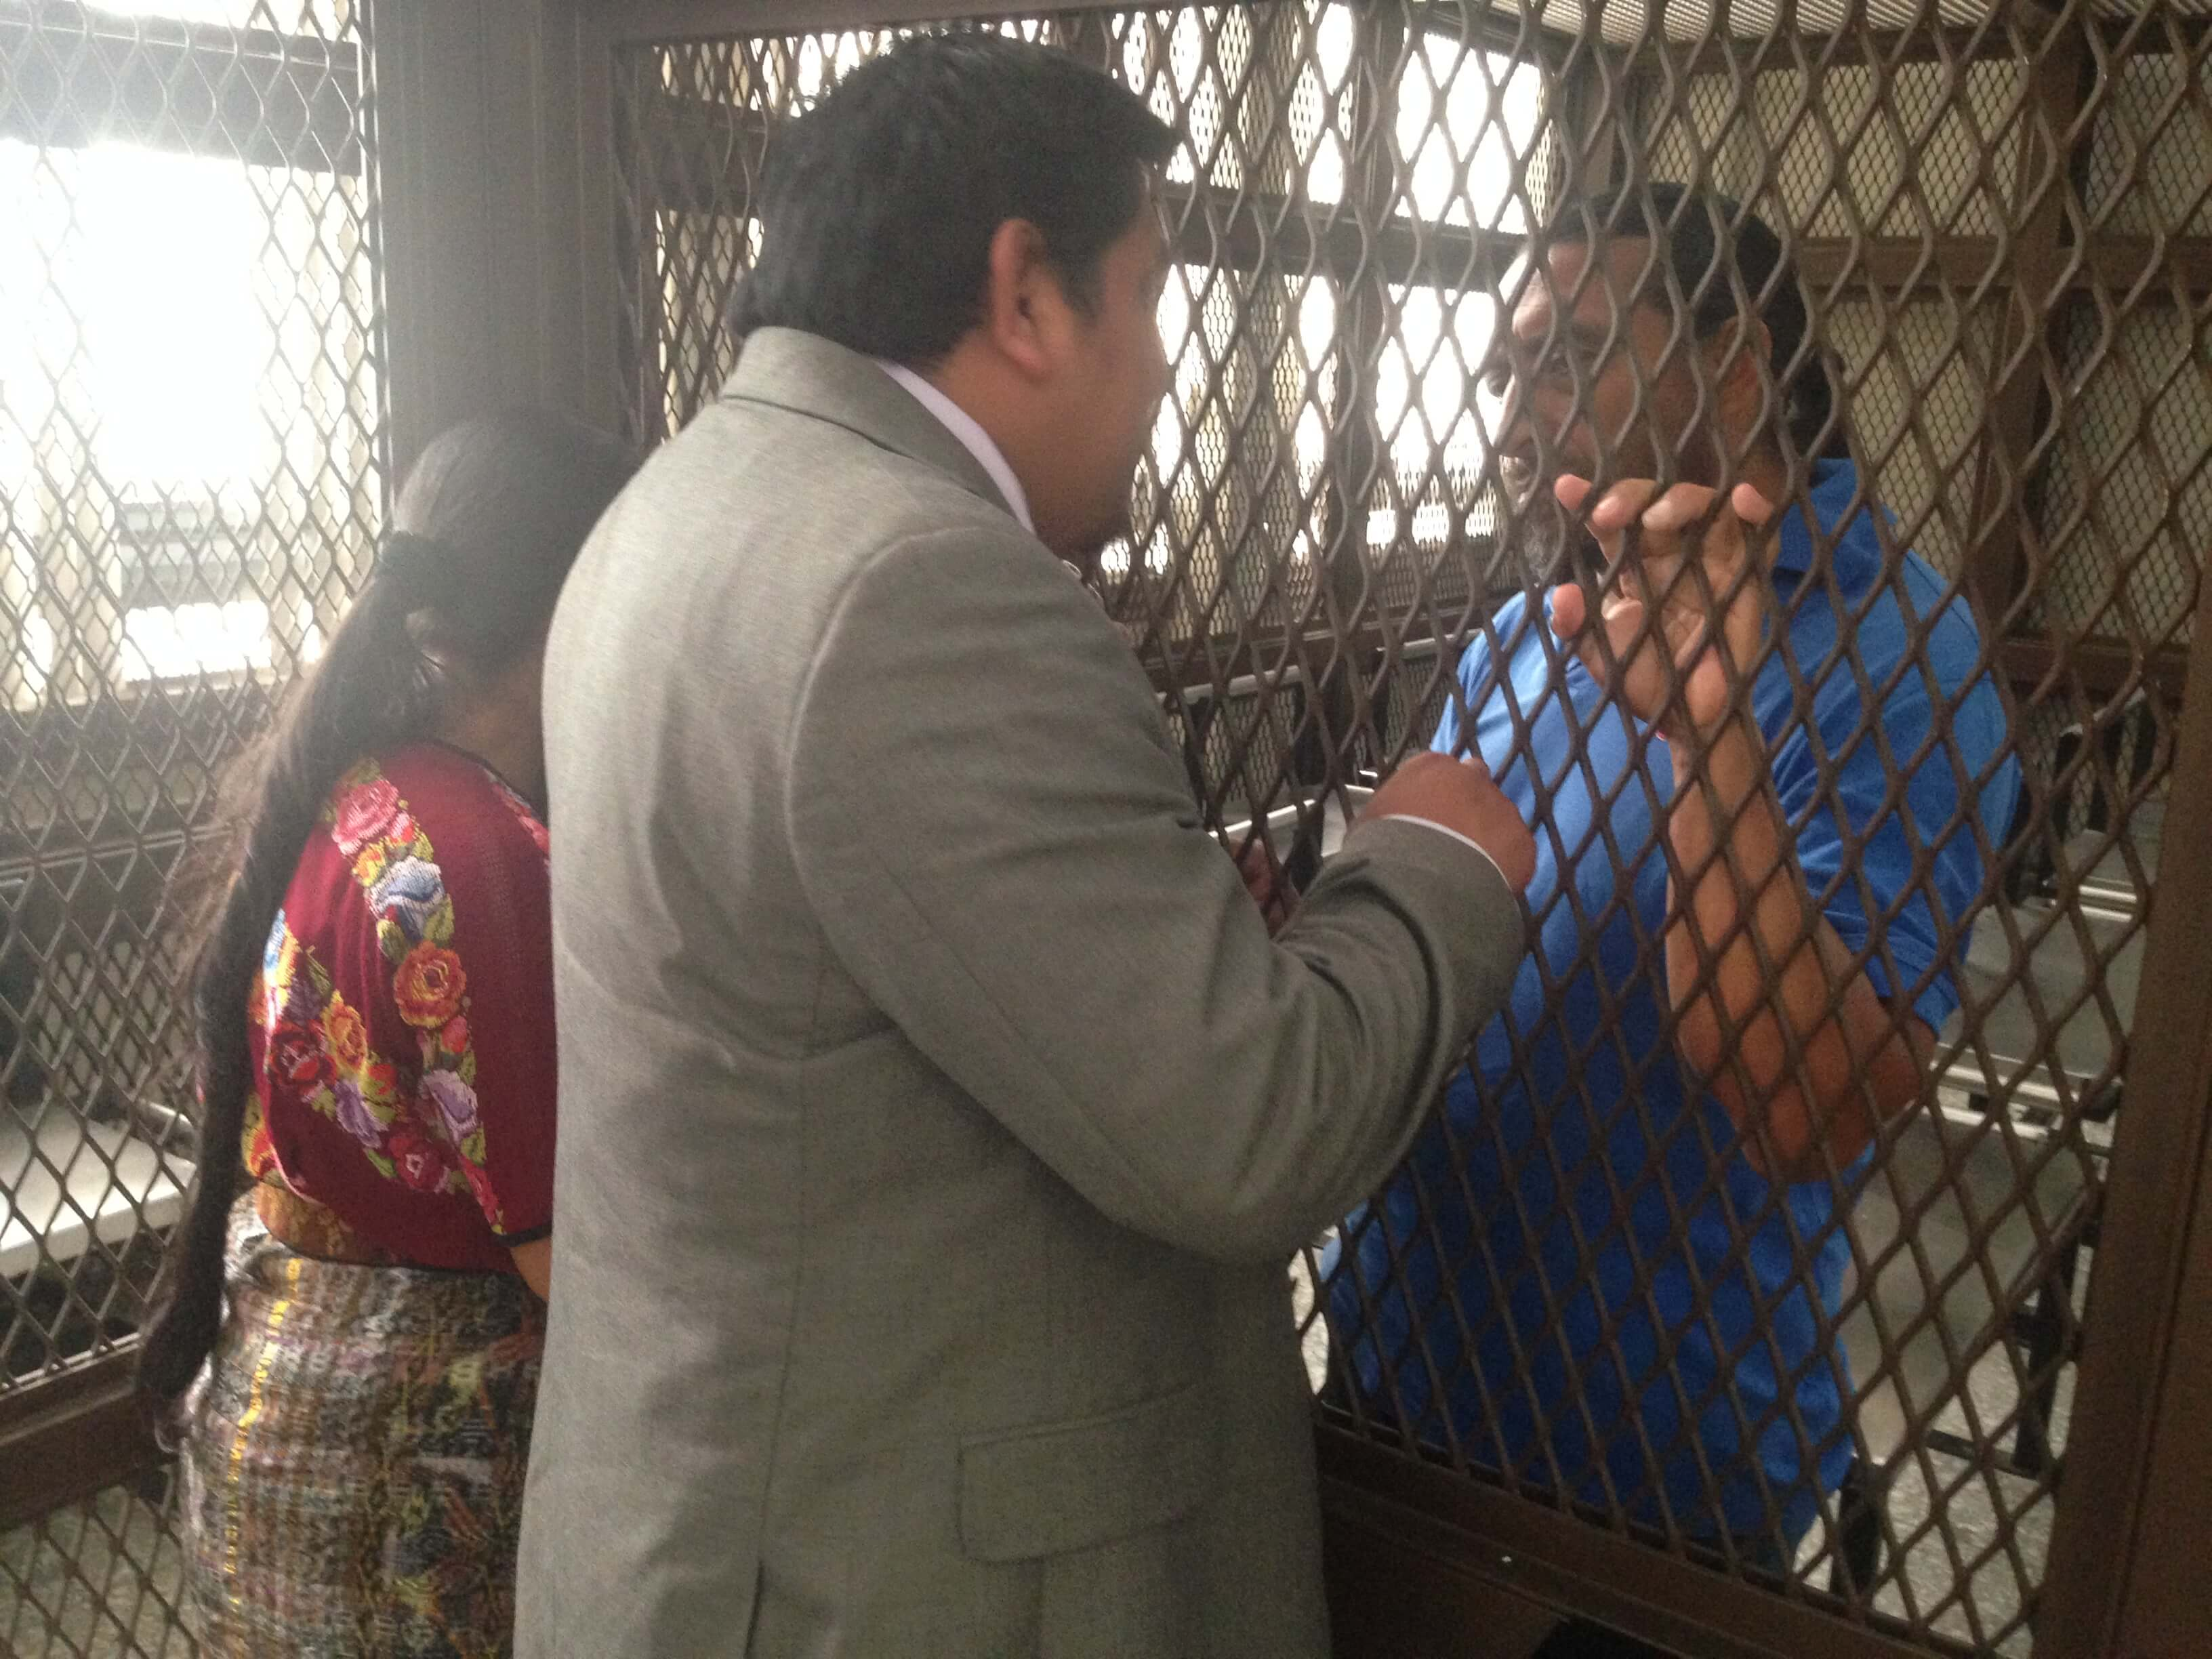 Juan Castro talks to Rigoberto Juarez before the start of the trial.  Photo: José Agry Sian